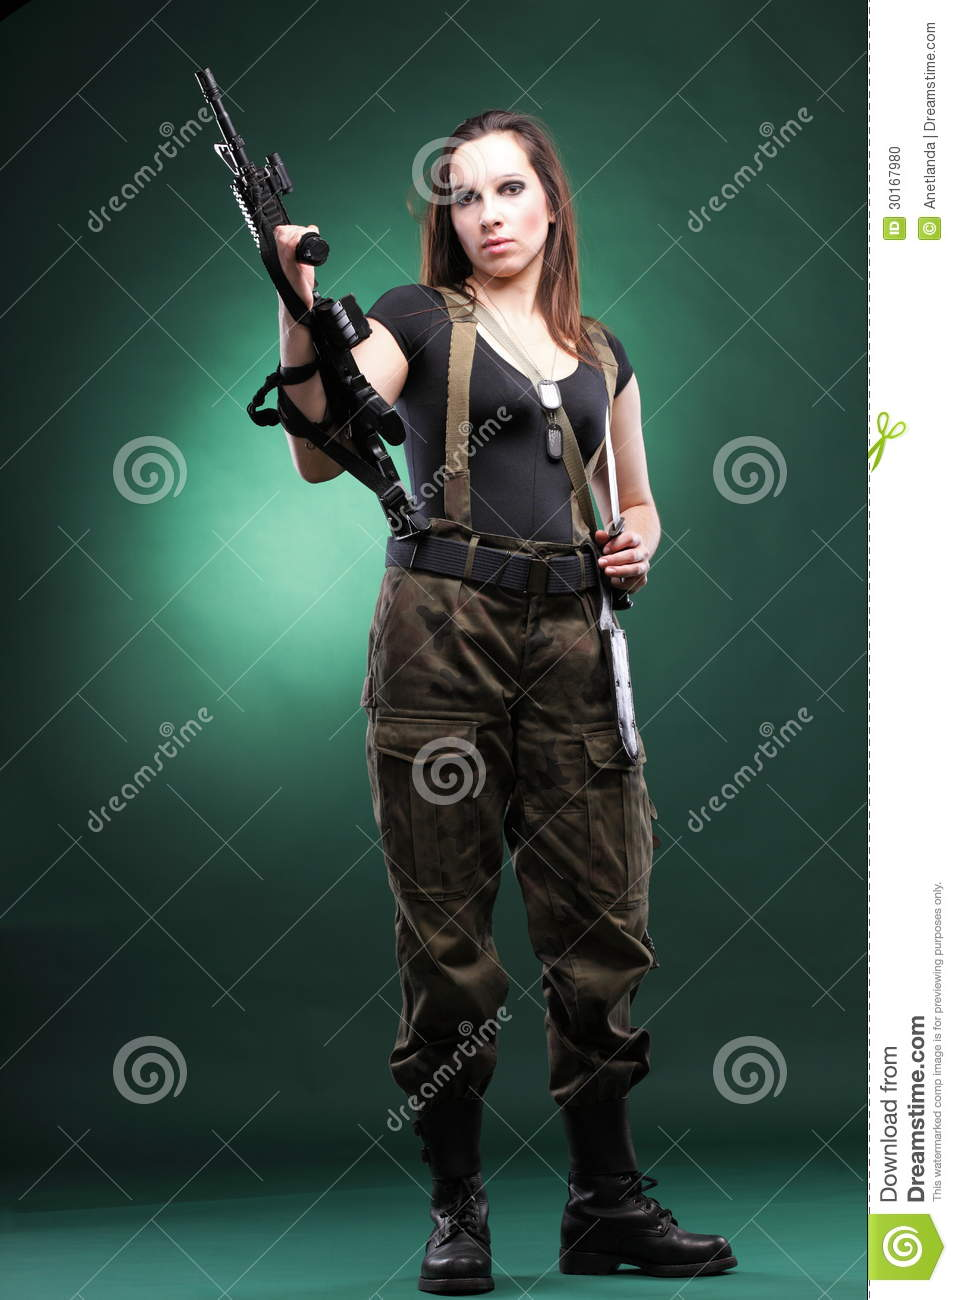 Join military naked army girl holding a gun can